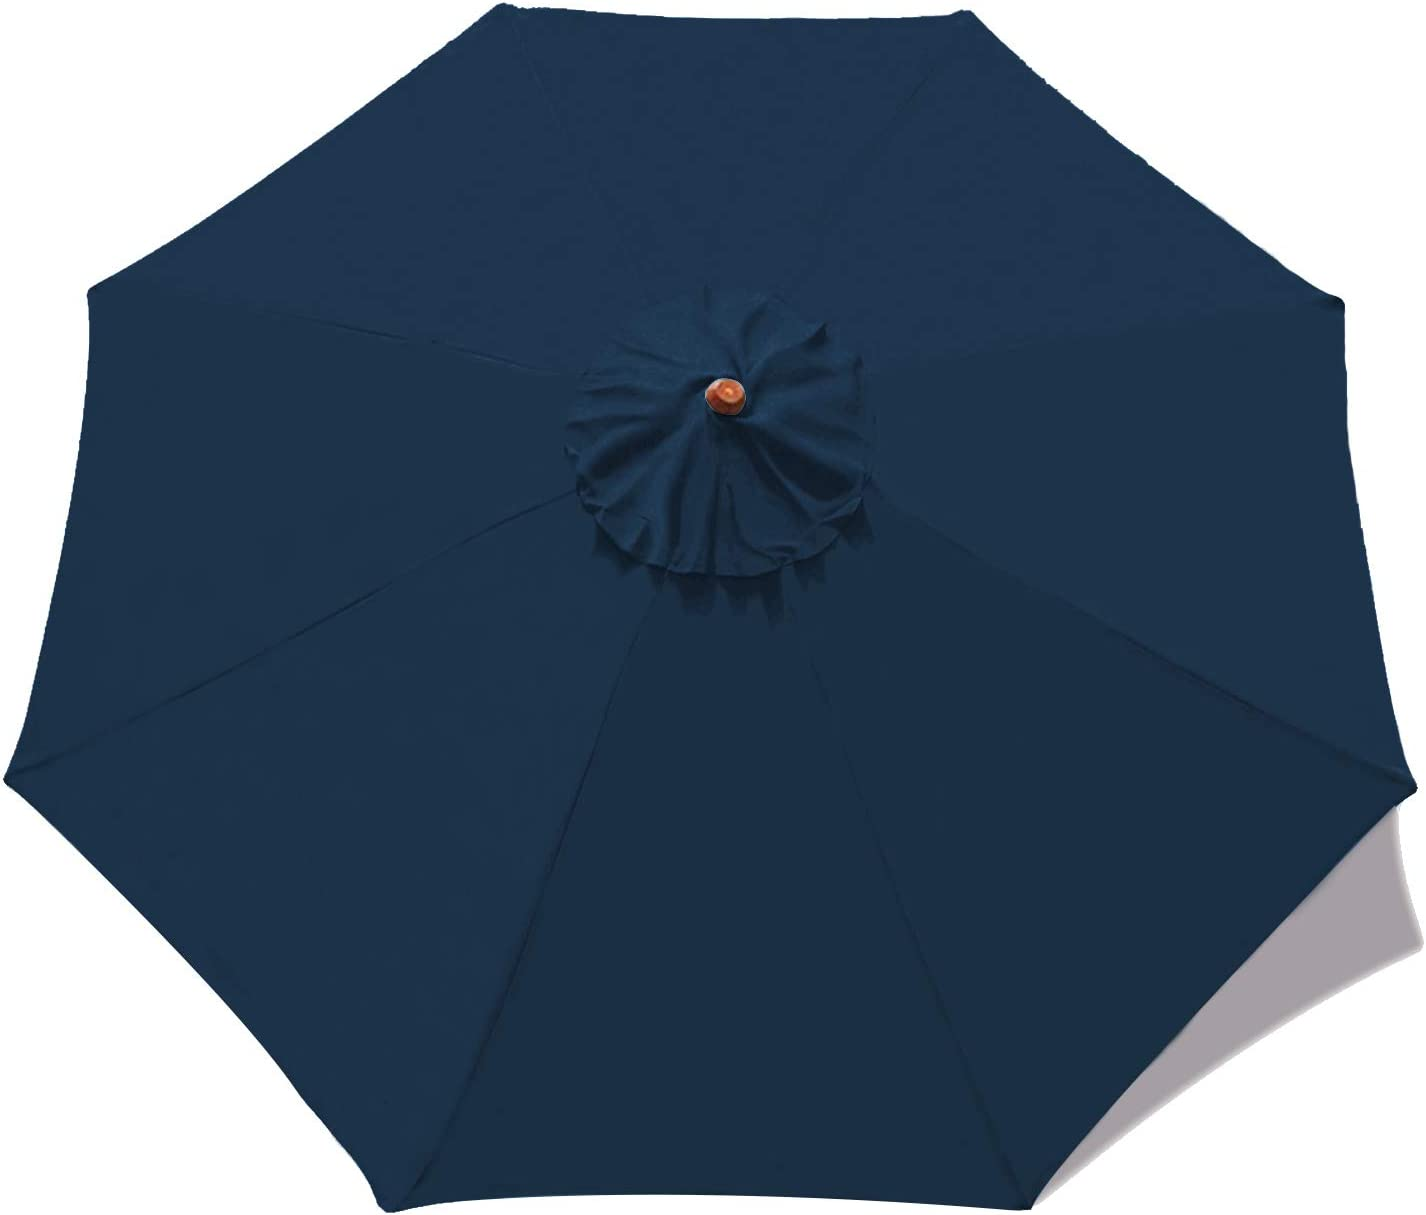 ABCCANOPY Factory outlet High quality 7.5ft Outdoor Umbrella Patio Replacement Top